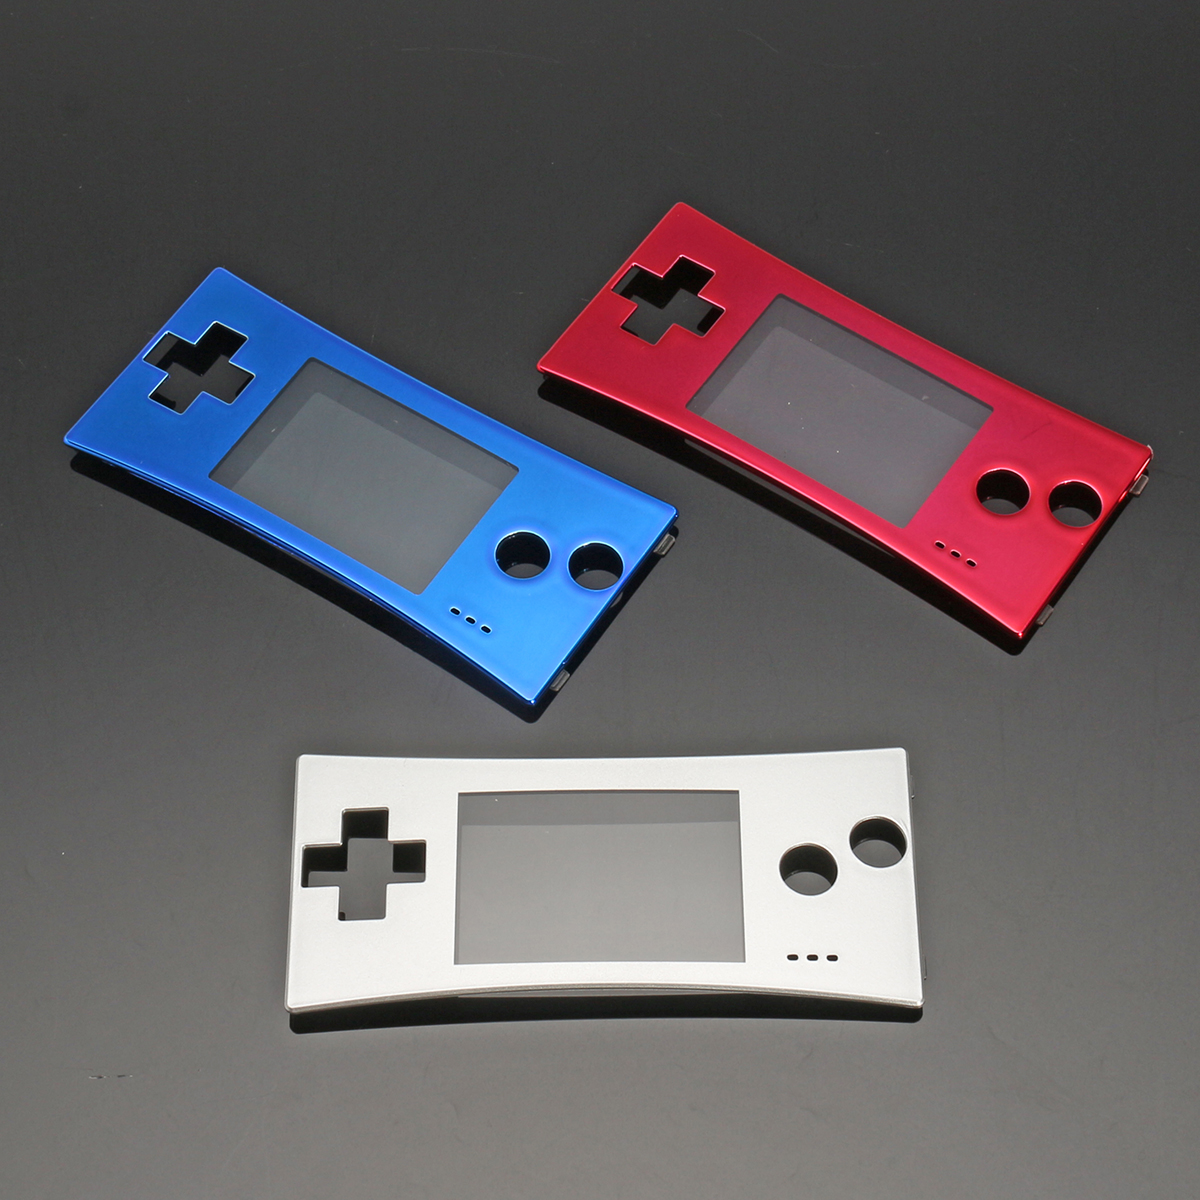 Replacement Front Shell Faceplate Cover Case Part For Nintendo Gameboy Micro GBM